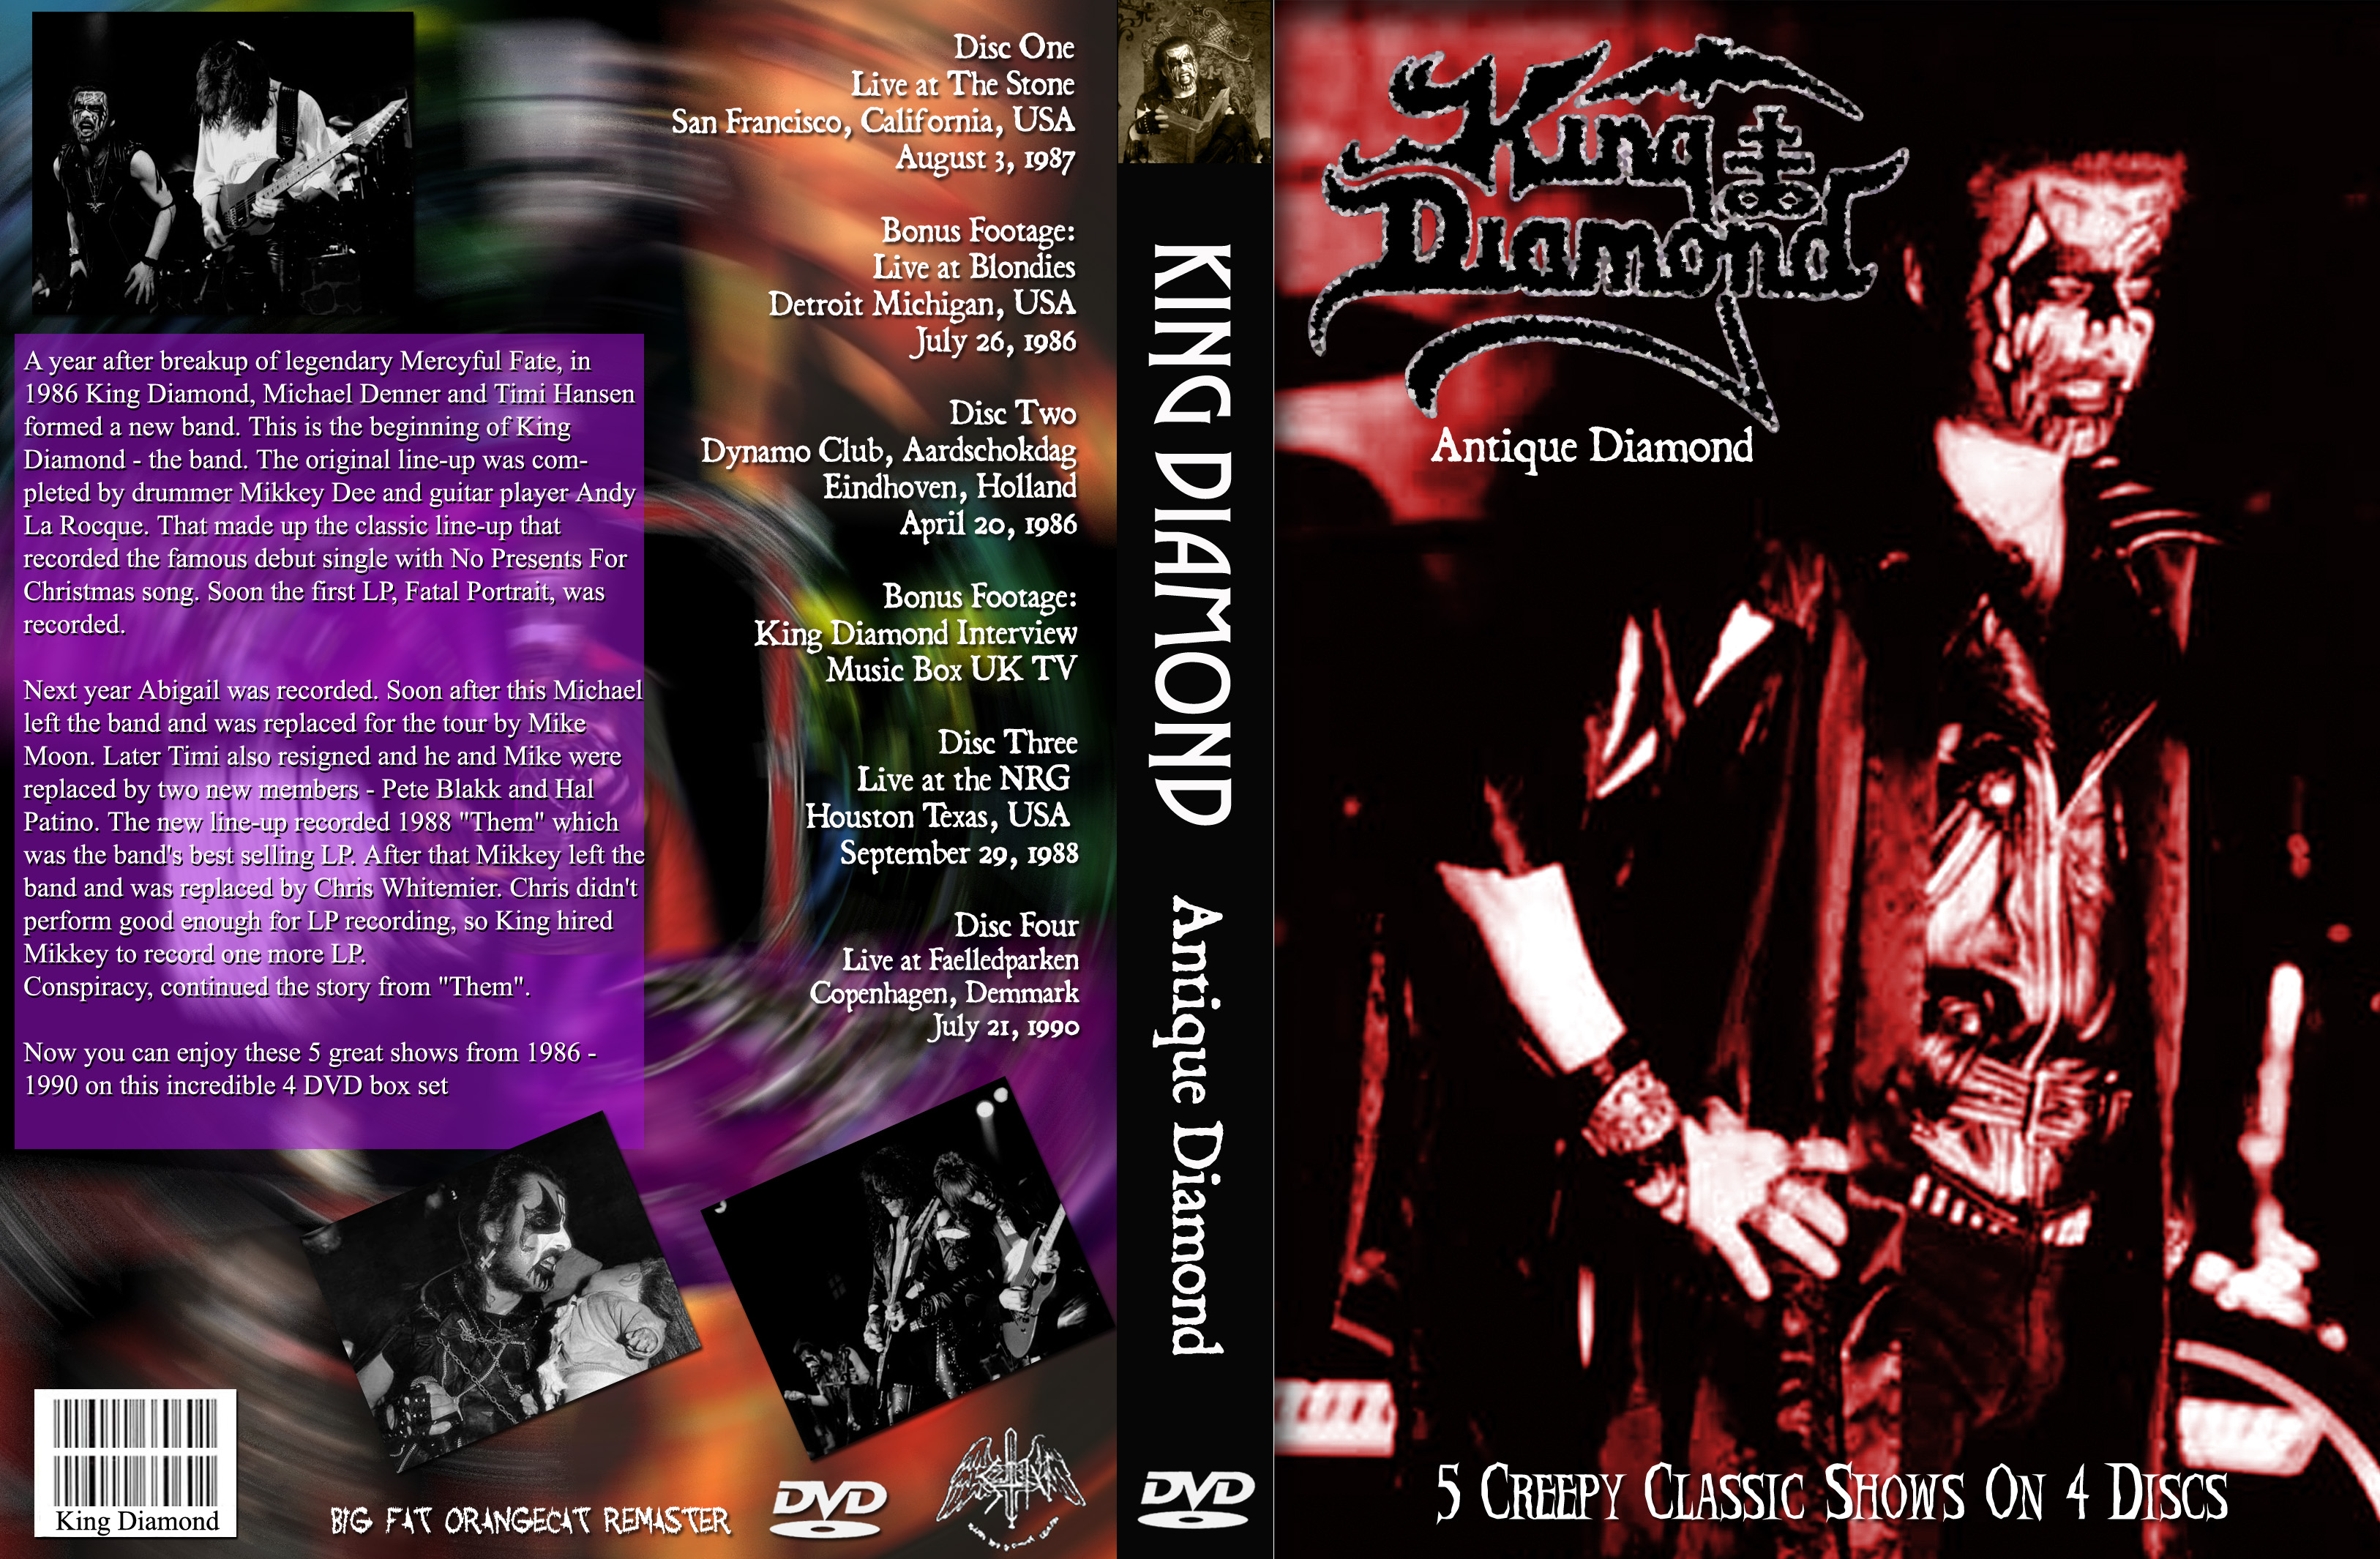 King diamond no presents for christmas - Front Cover Art